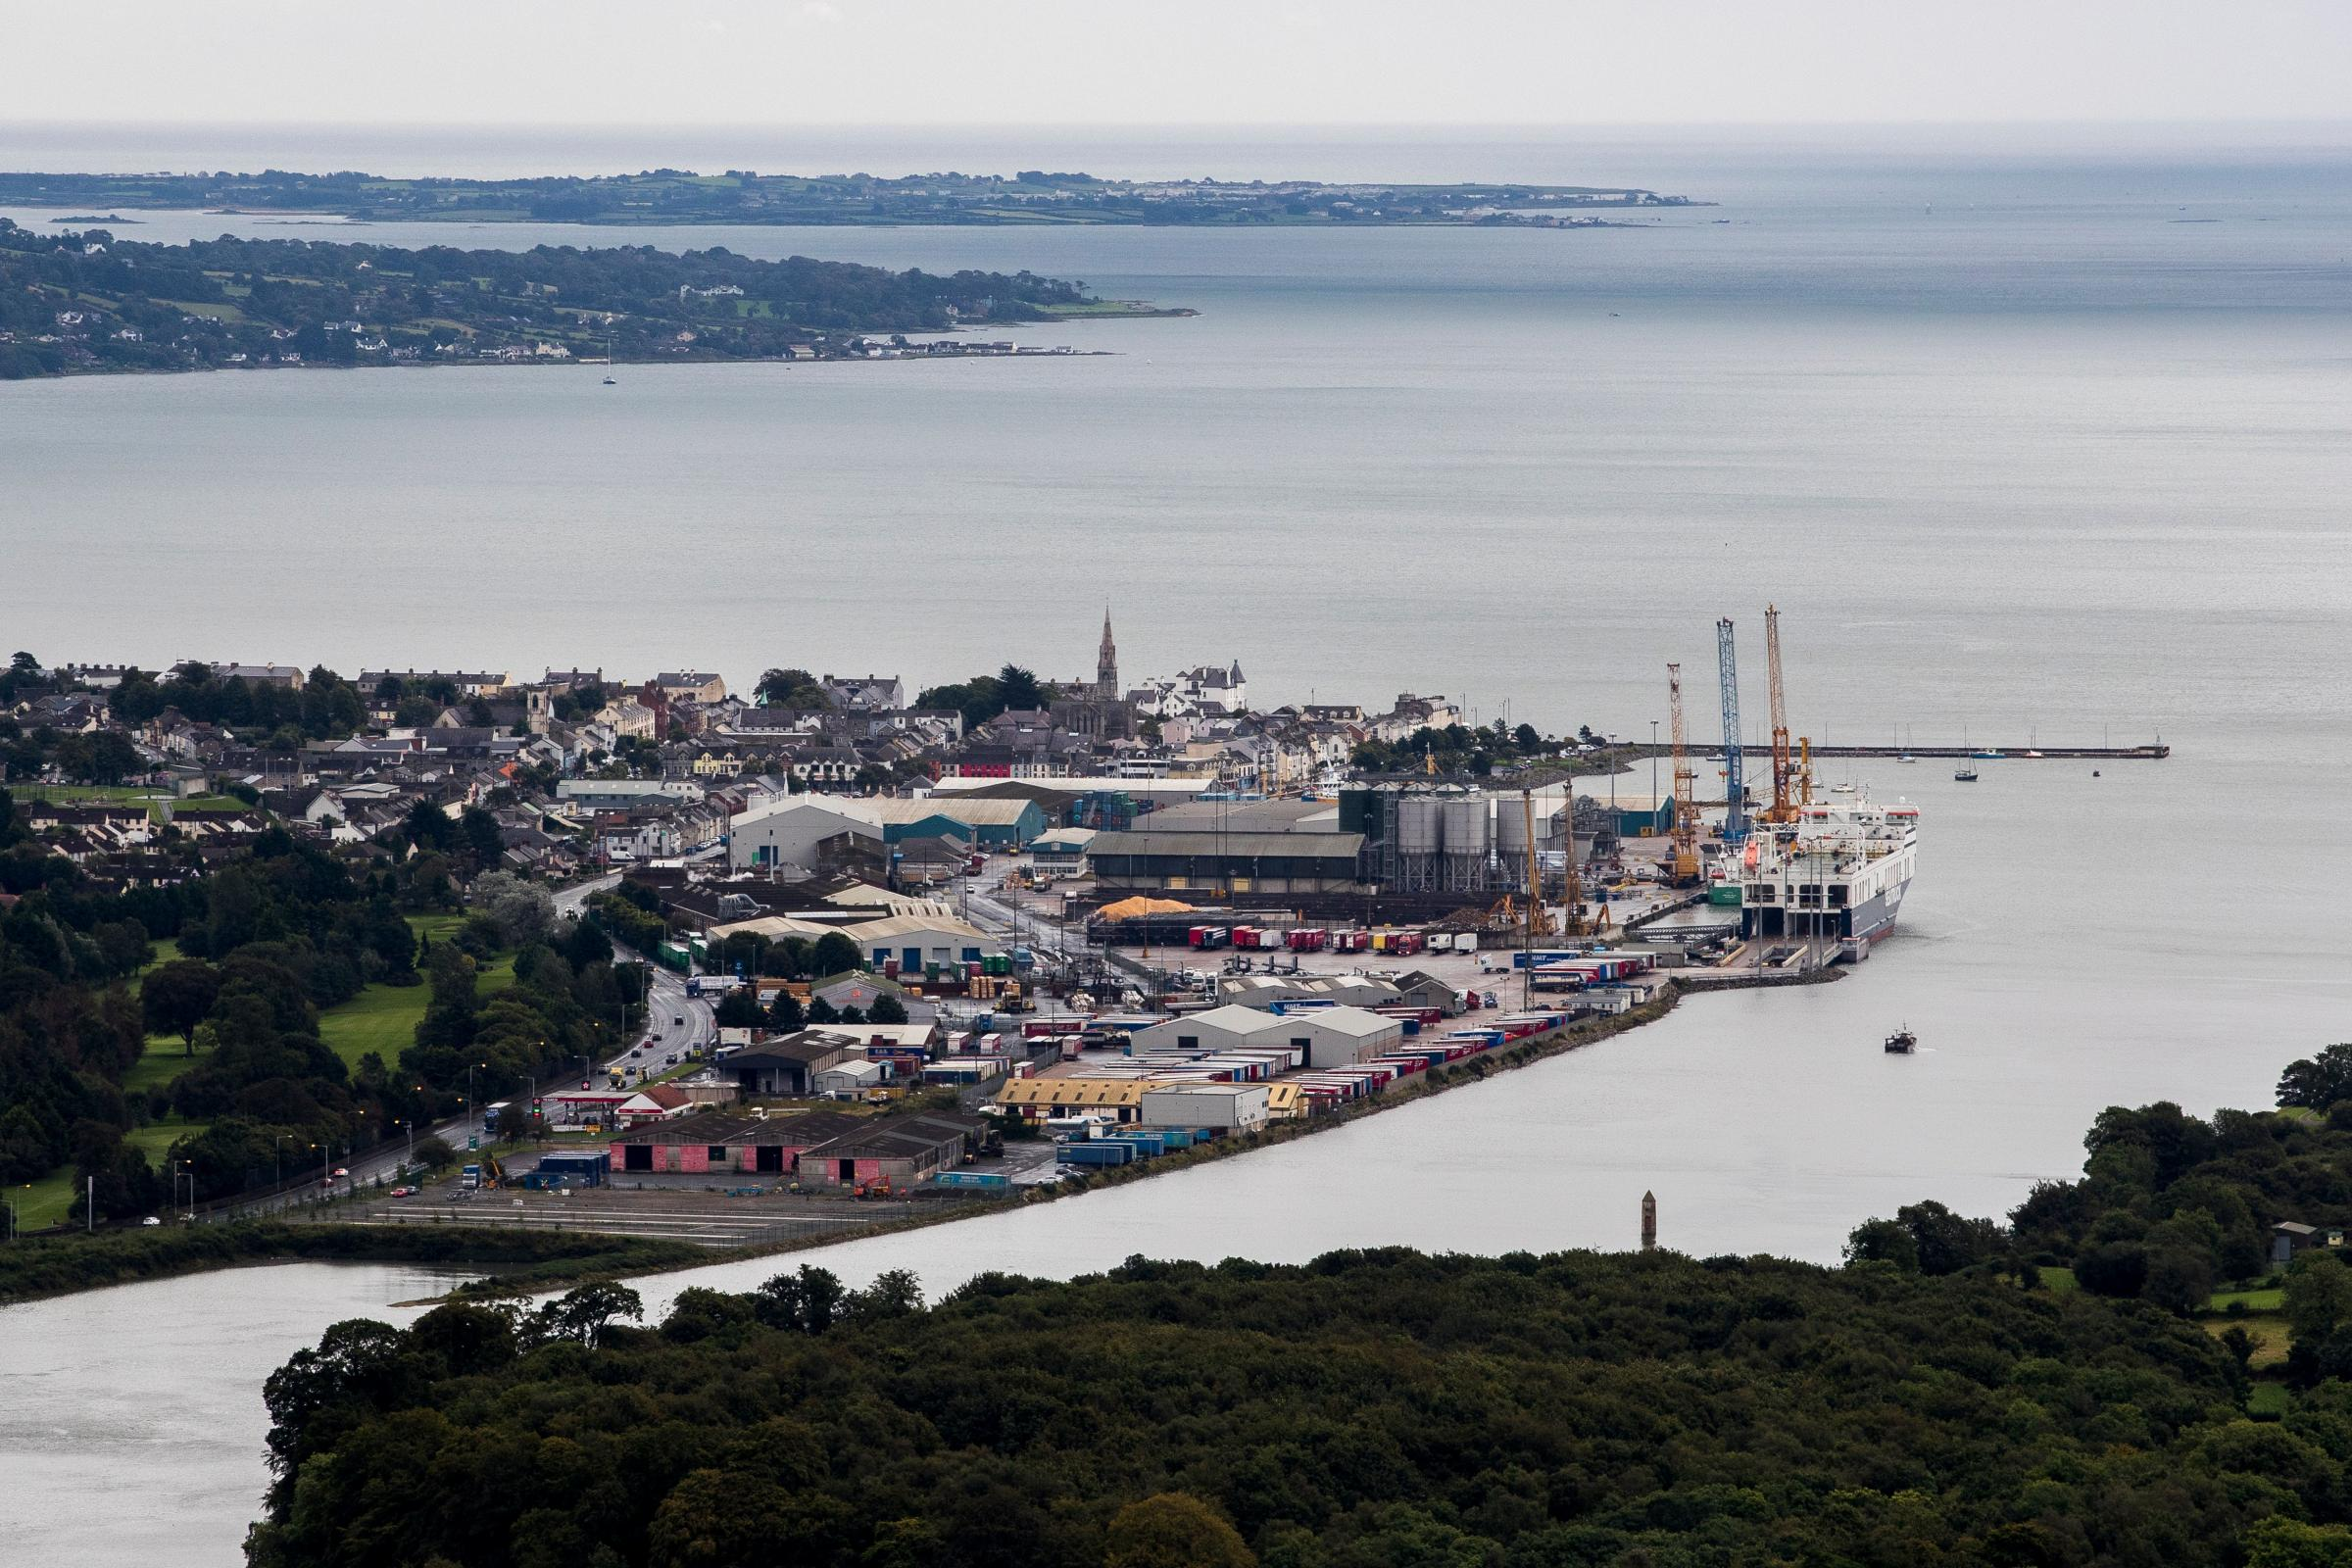 'Steady' flow of trade at Northern Ireland's ports under new arrangements